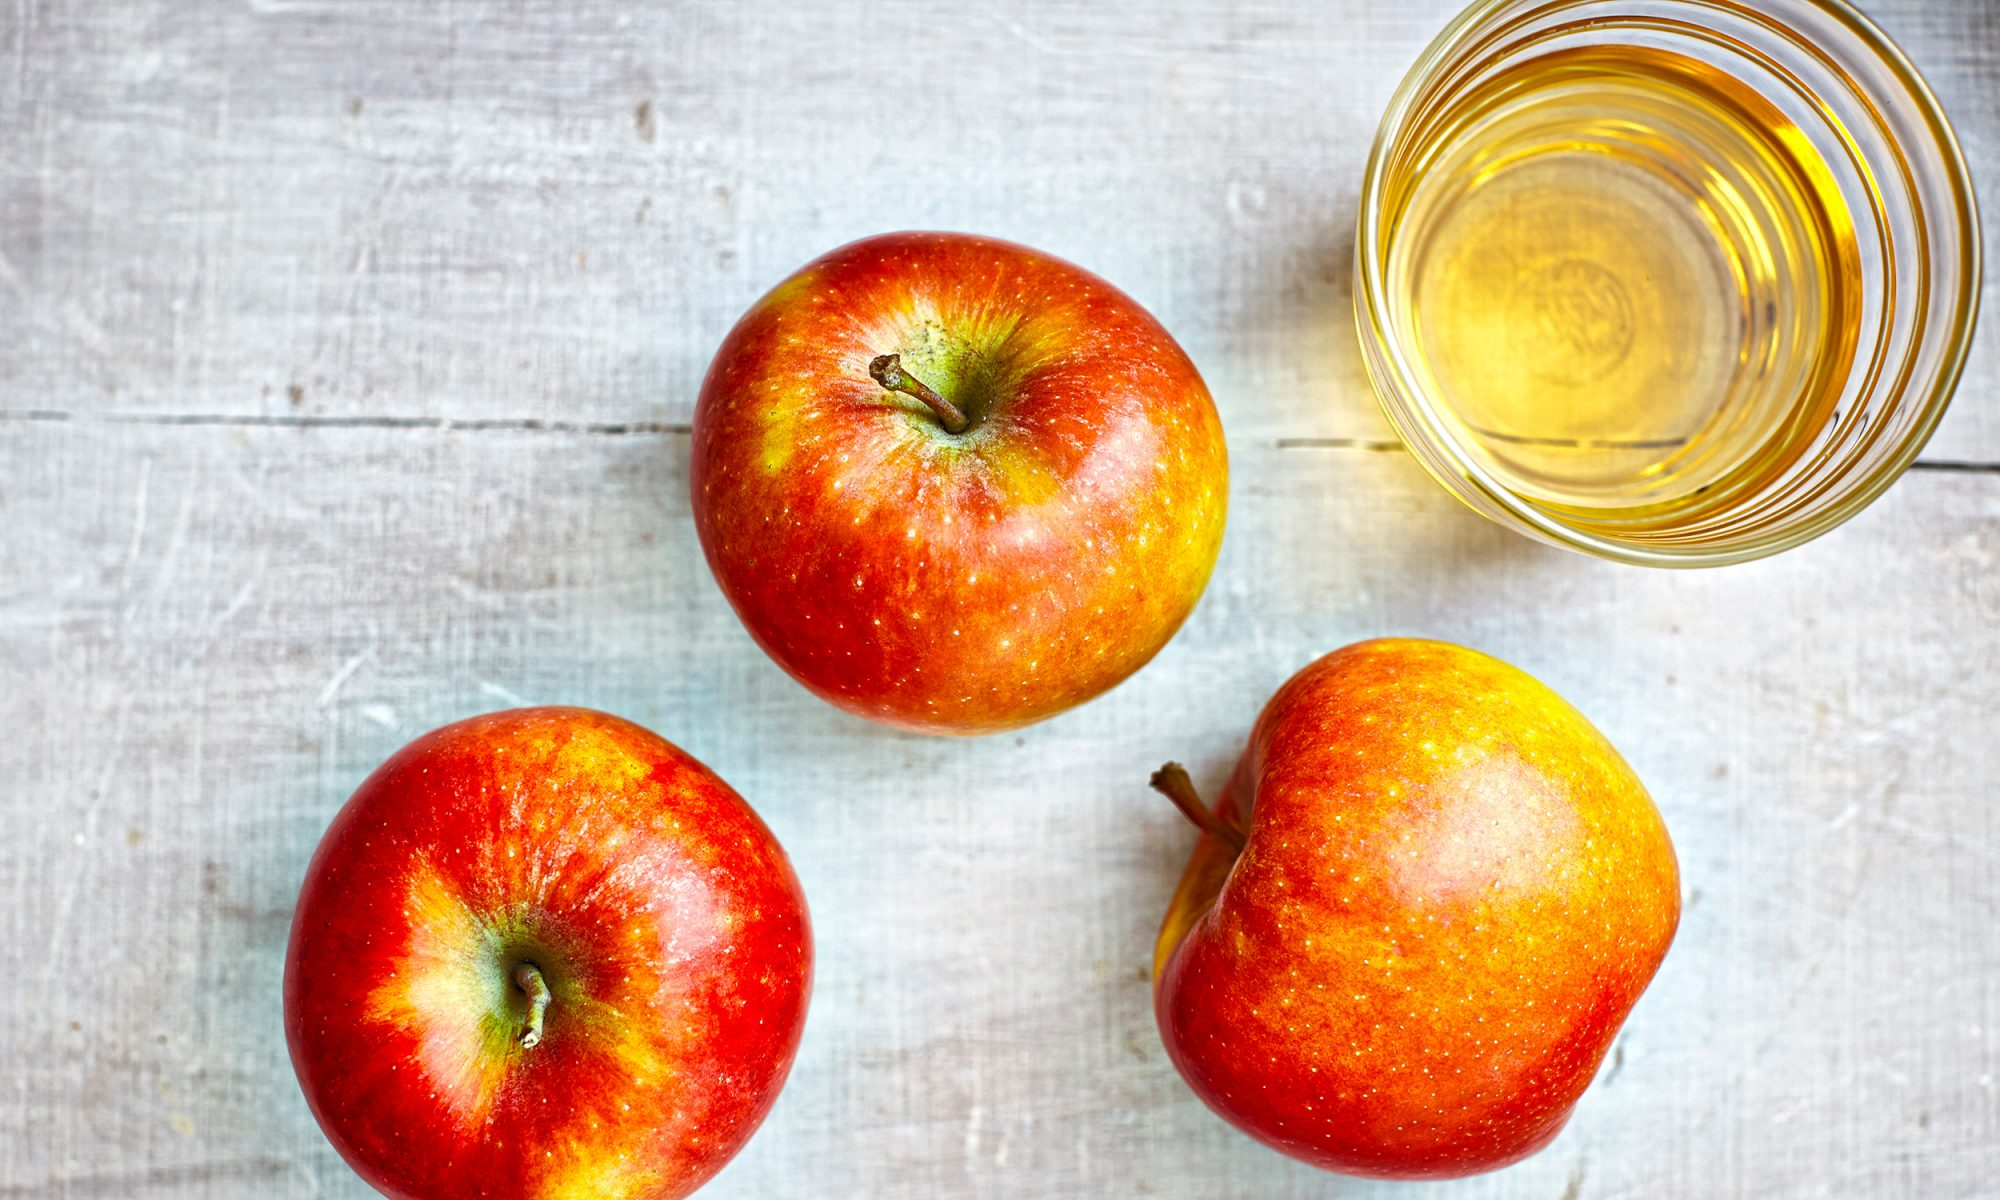 apples and cider